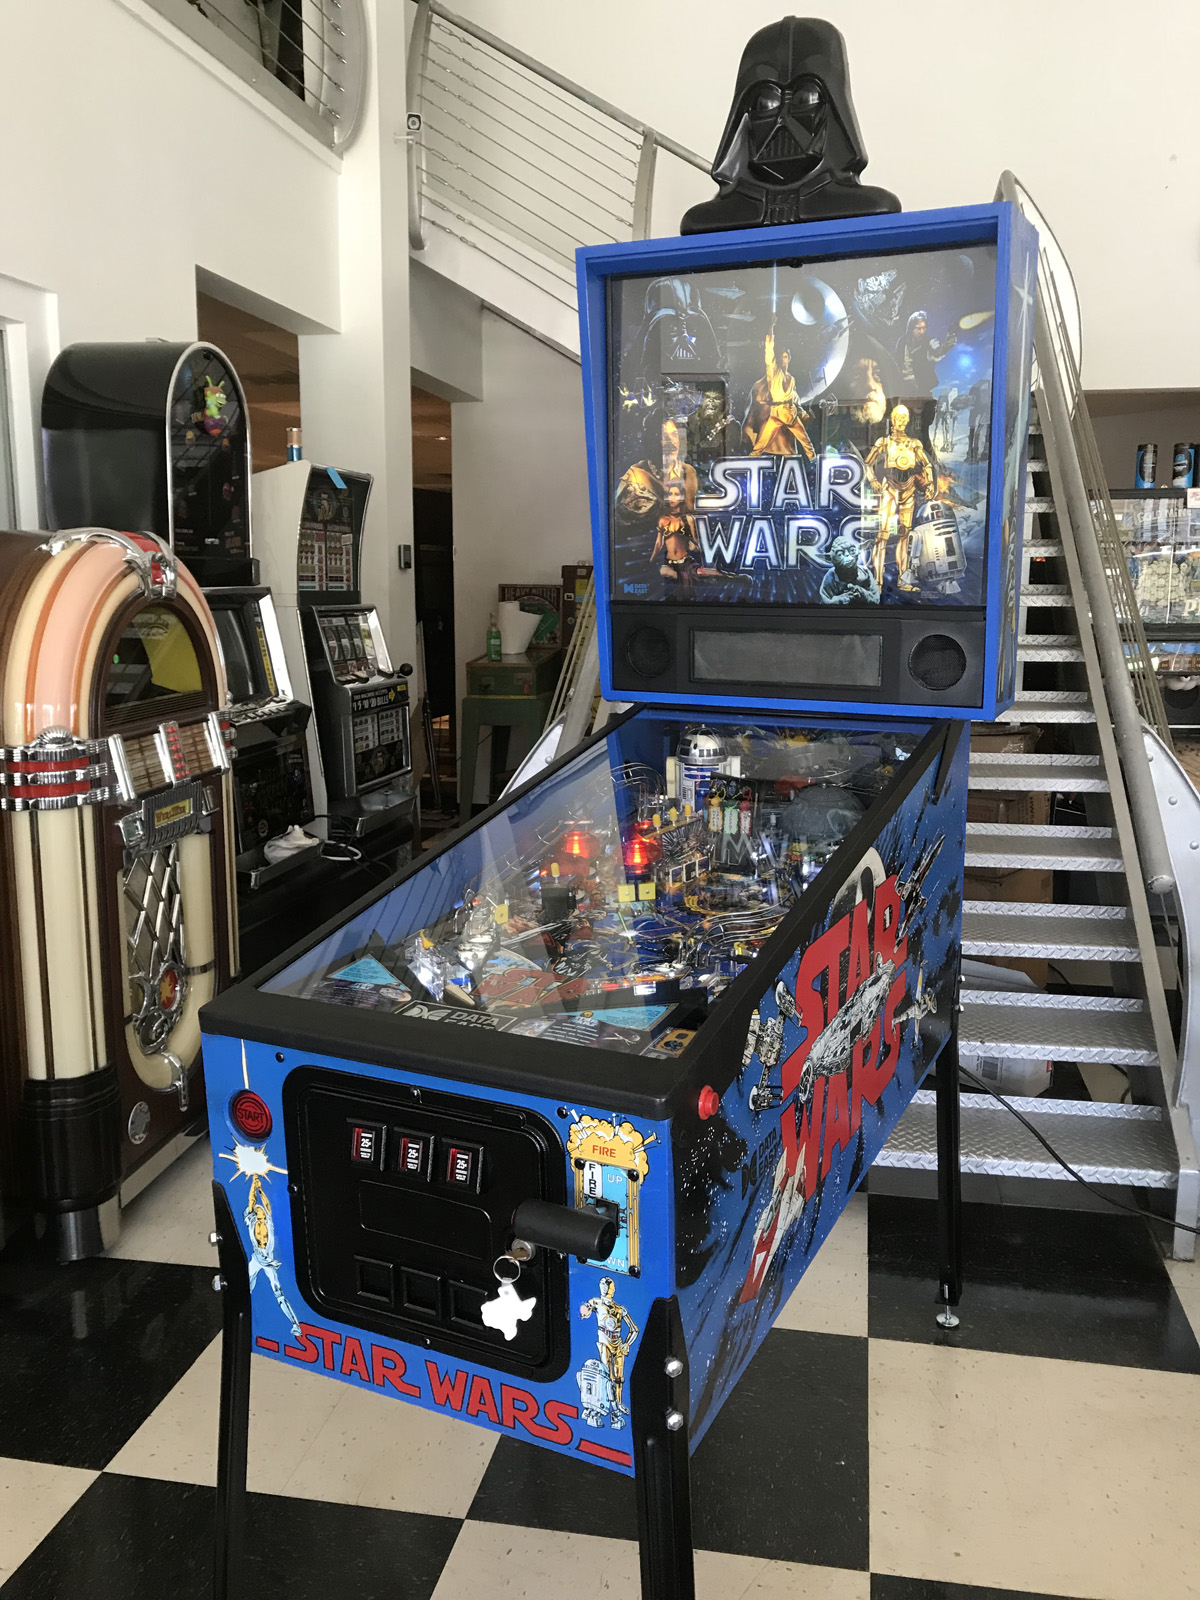 Star Wars Pinball Machine >> Star Wars Pinball Machine Fun